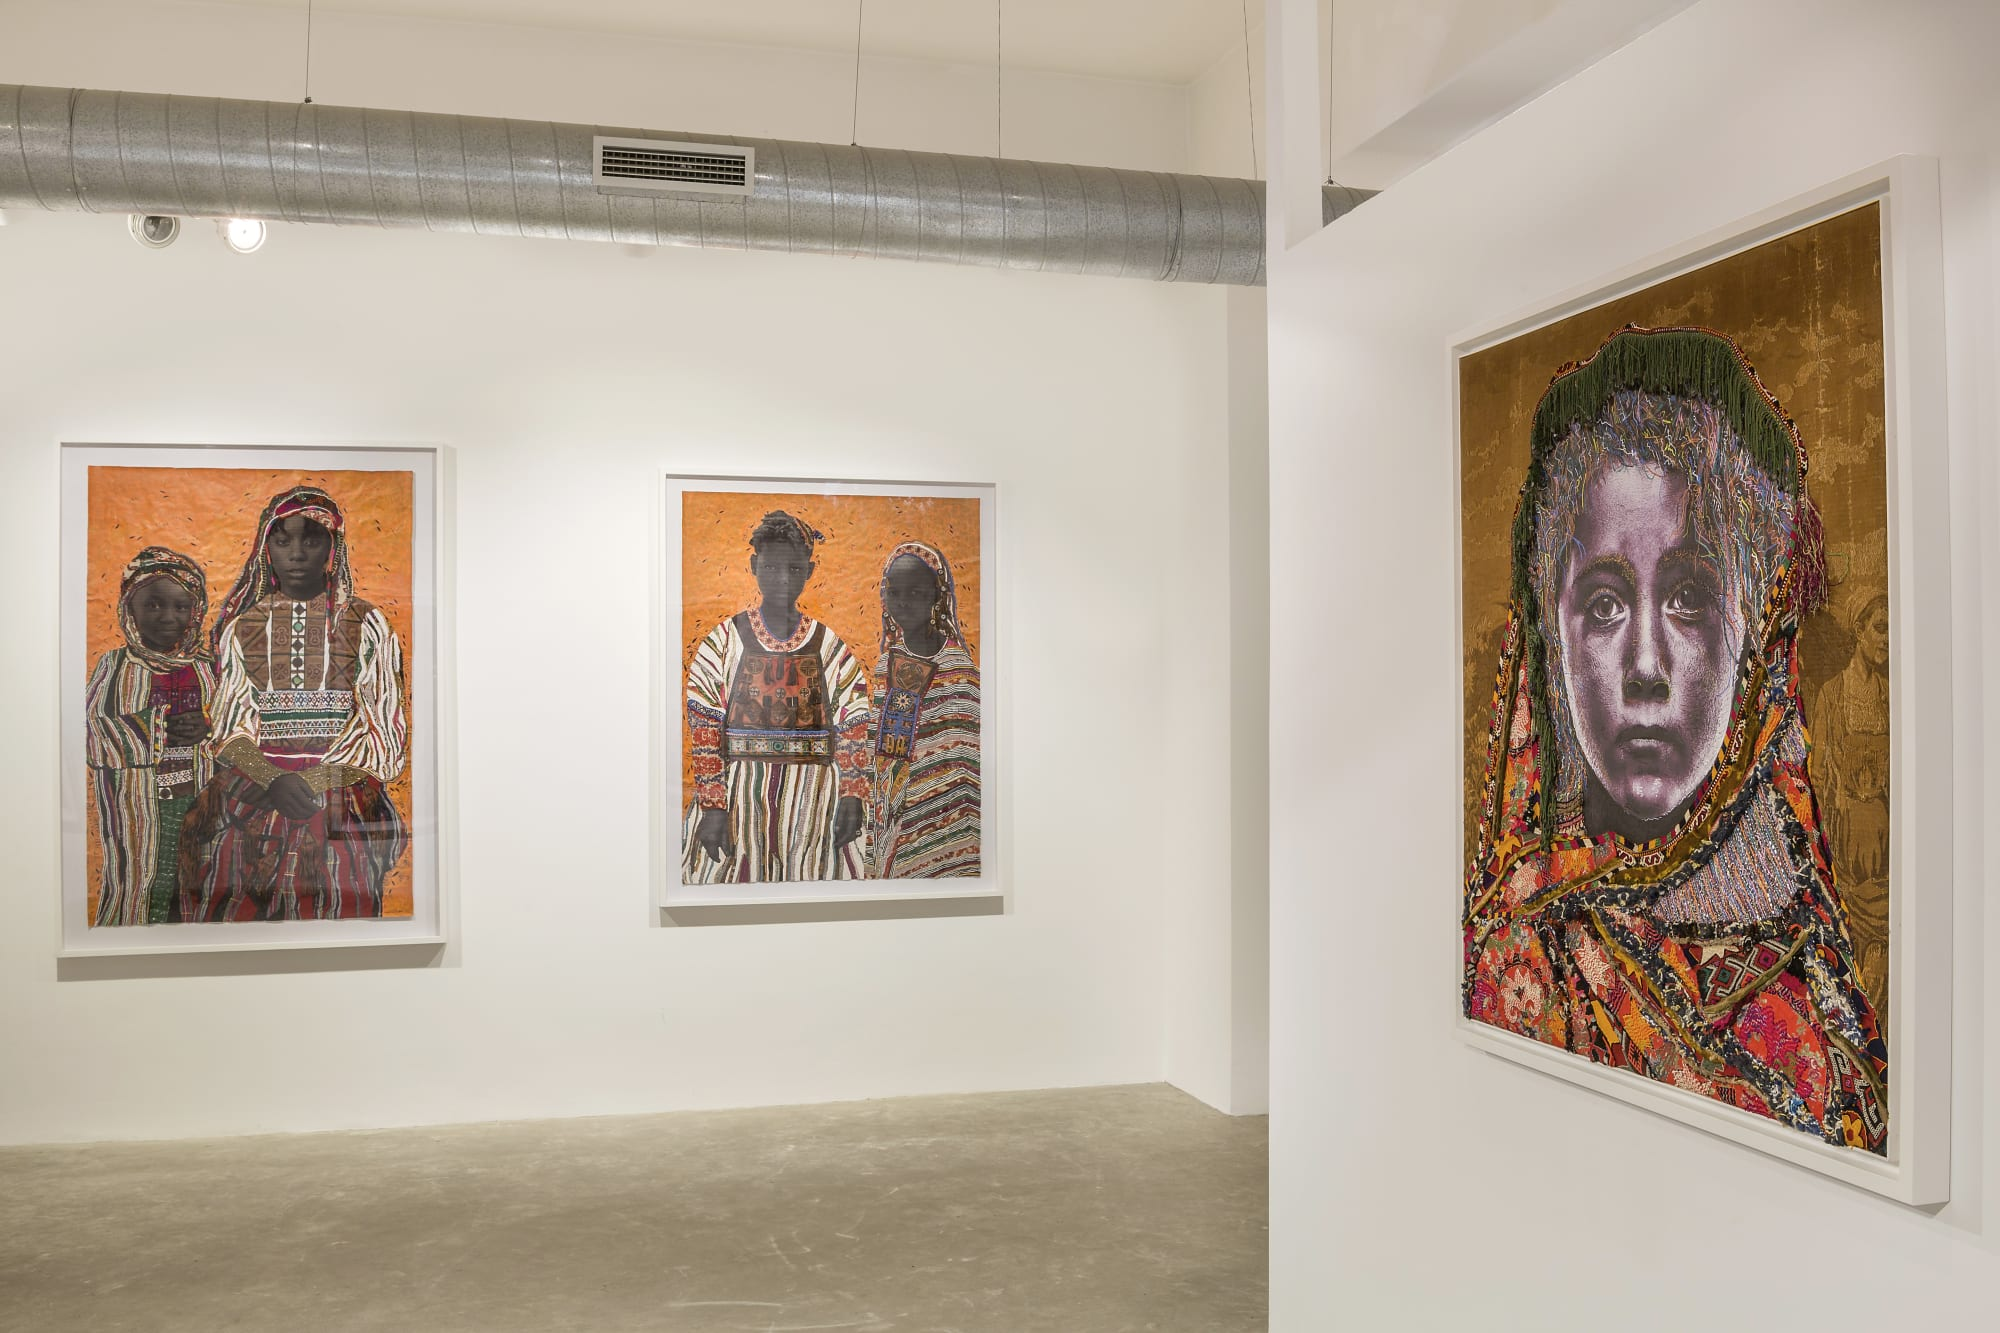 Welcome to look at me: Marion Boehm Solo Show